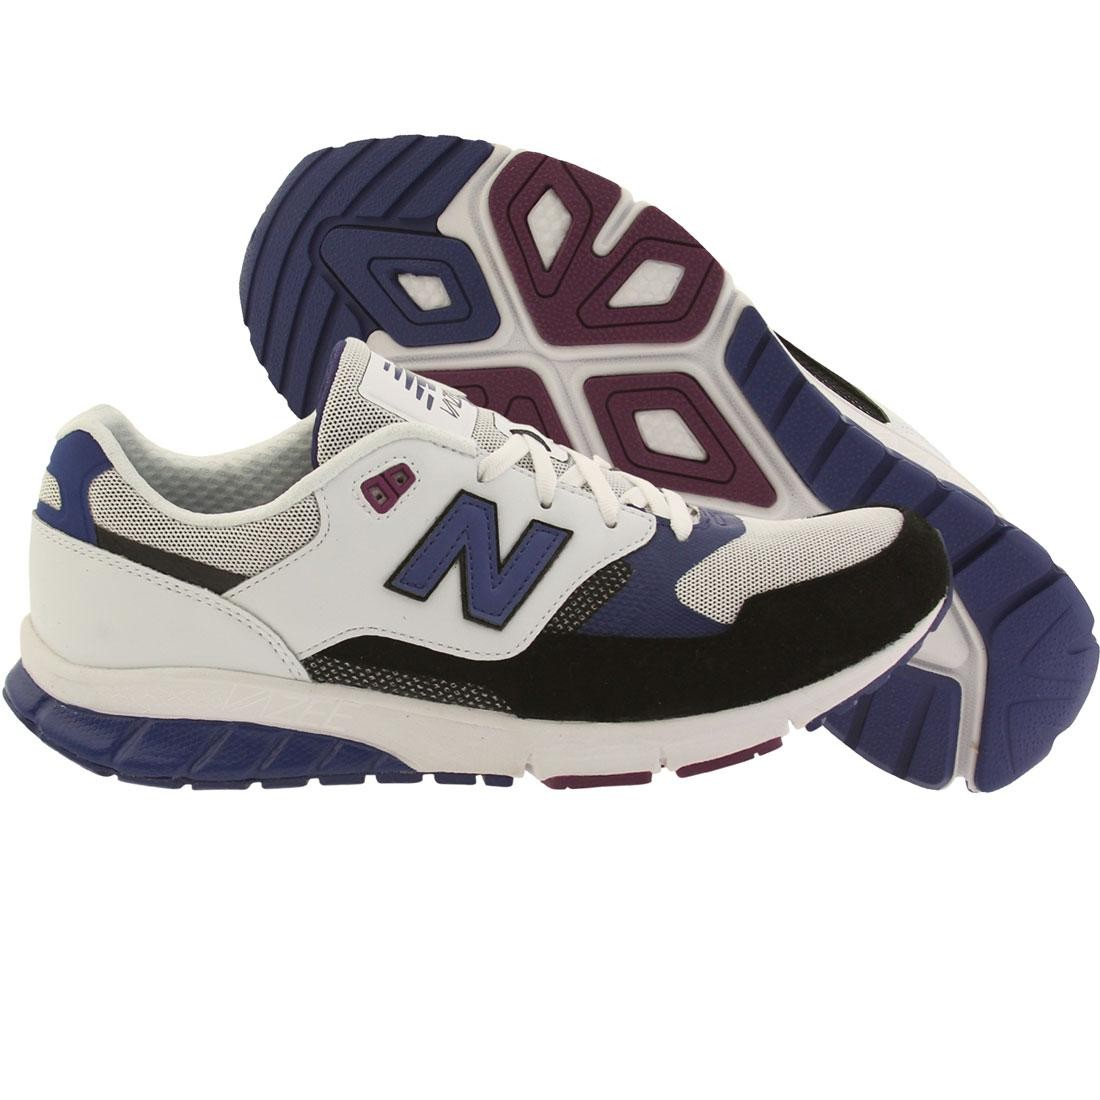 uk availability 54c0f 522a4 New Balance Men 530 Vazee MVL530AW (white / blue)